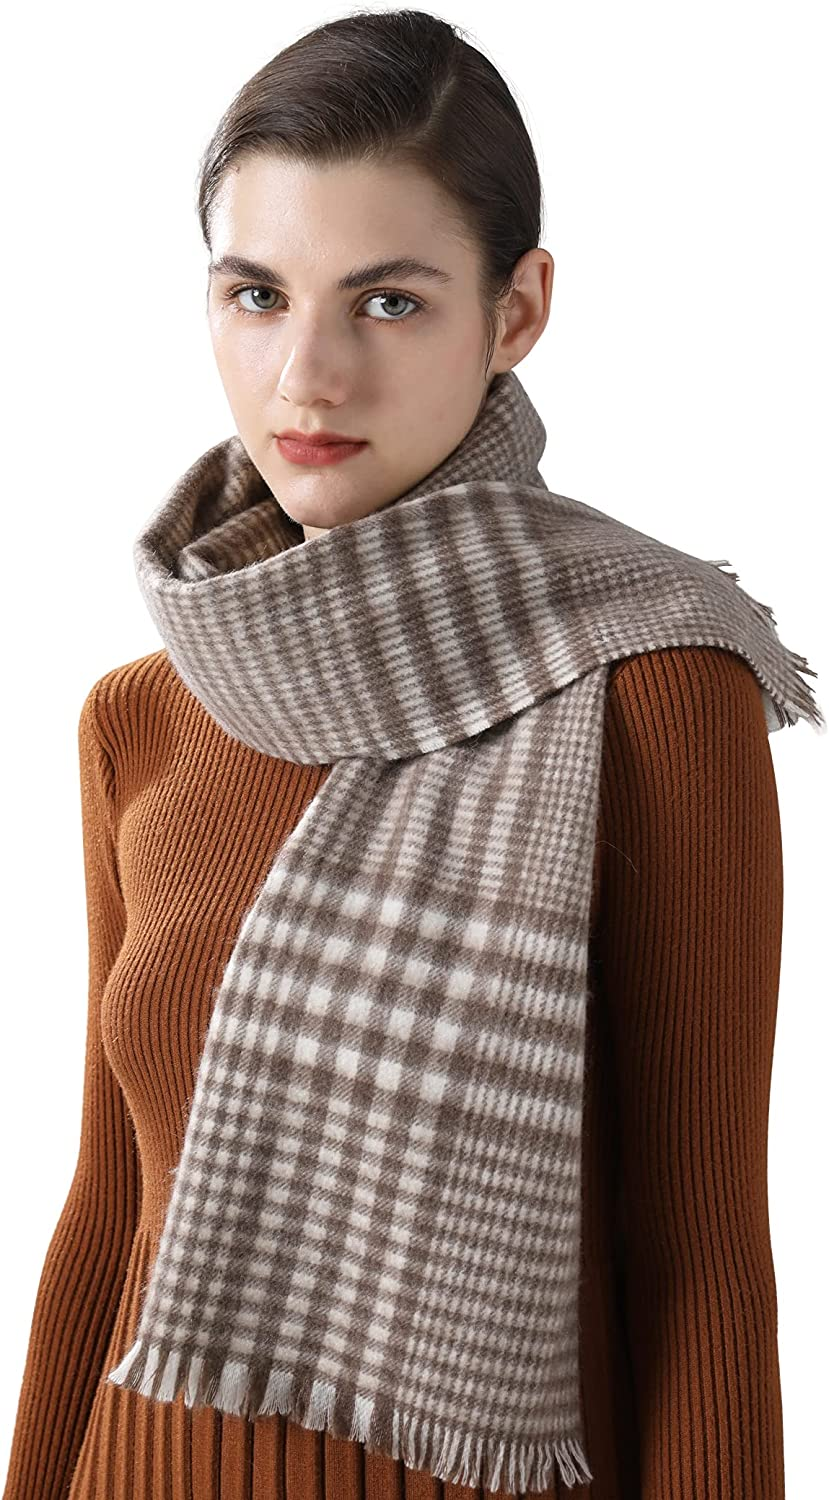 Jushkune 100% Cashmere Plaid Women's Scarf Large Soft Shawls and Wraps Evening Dress Office or Party